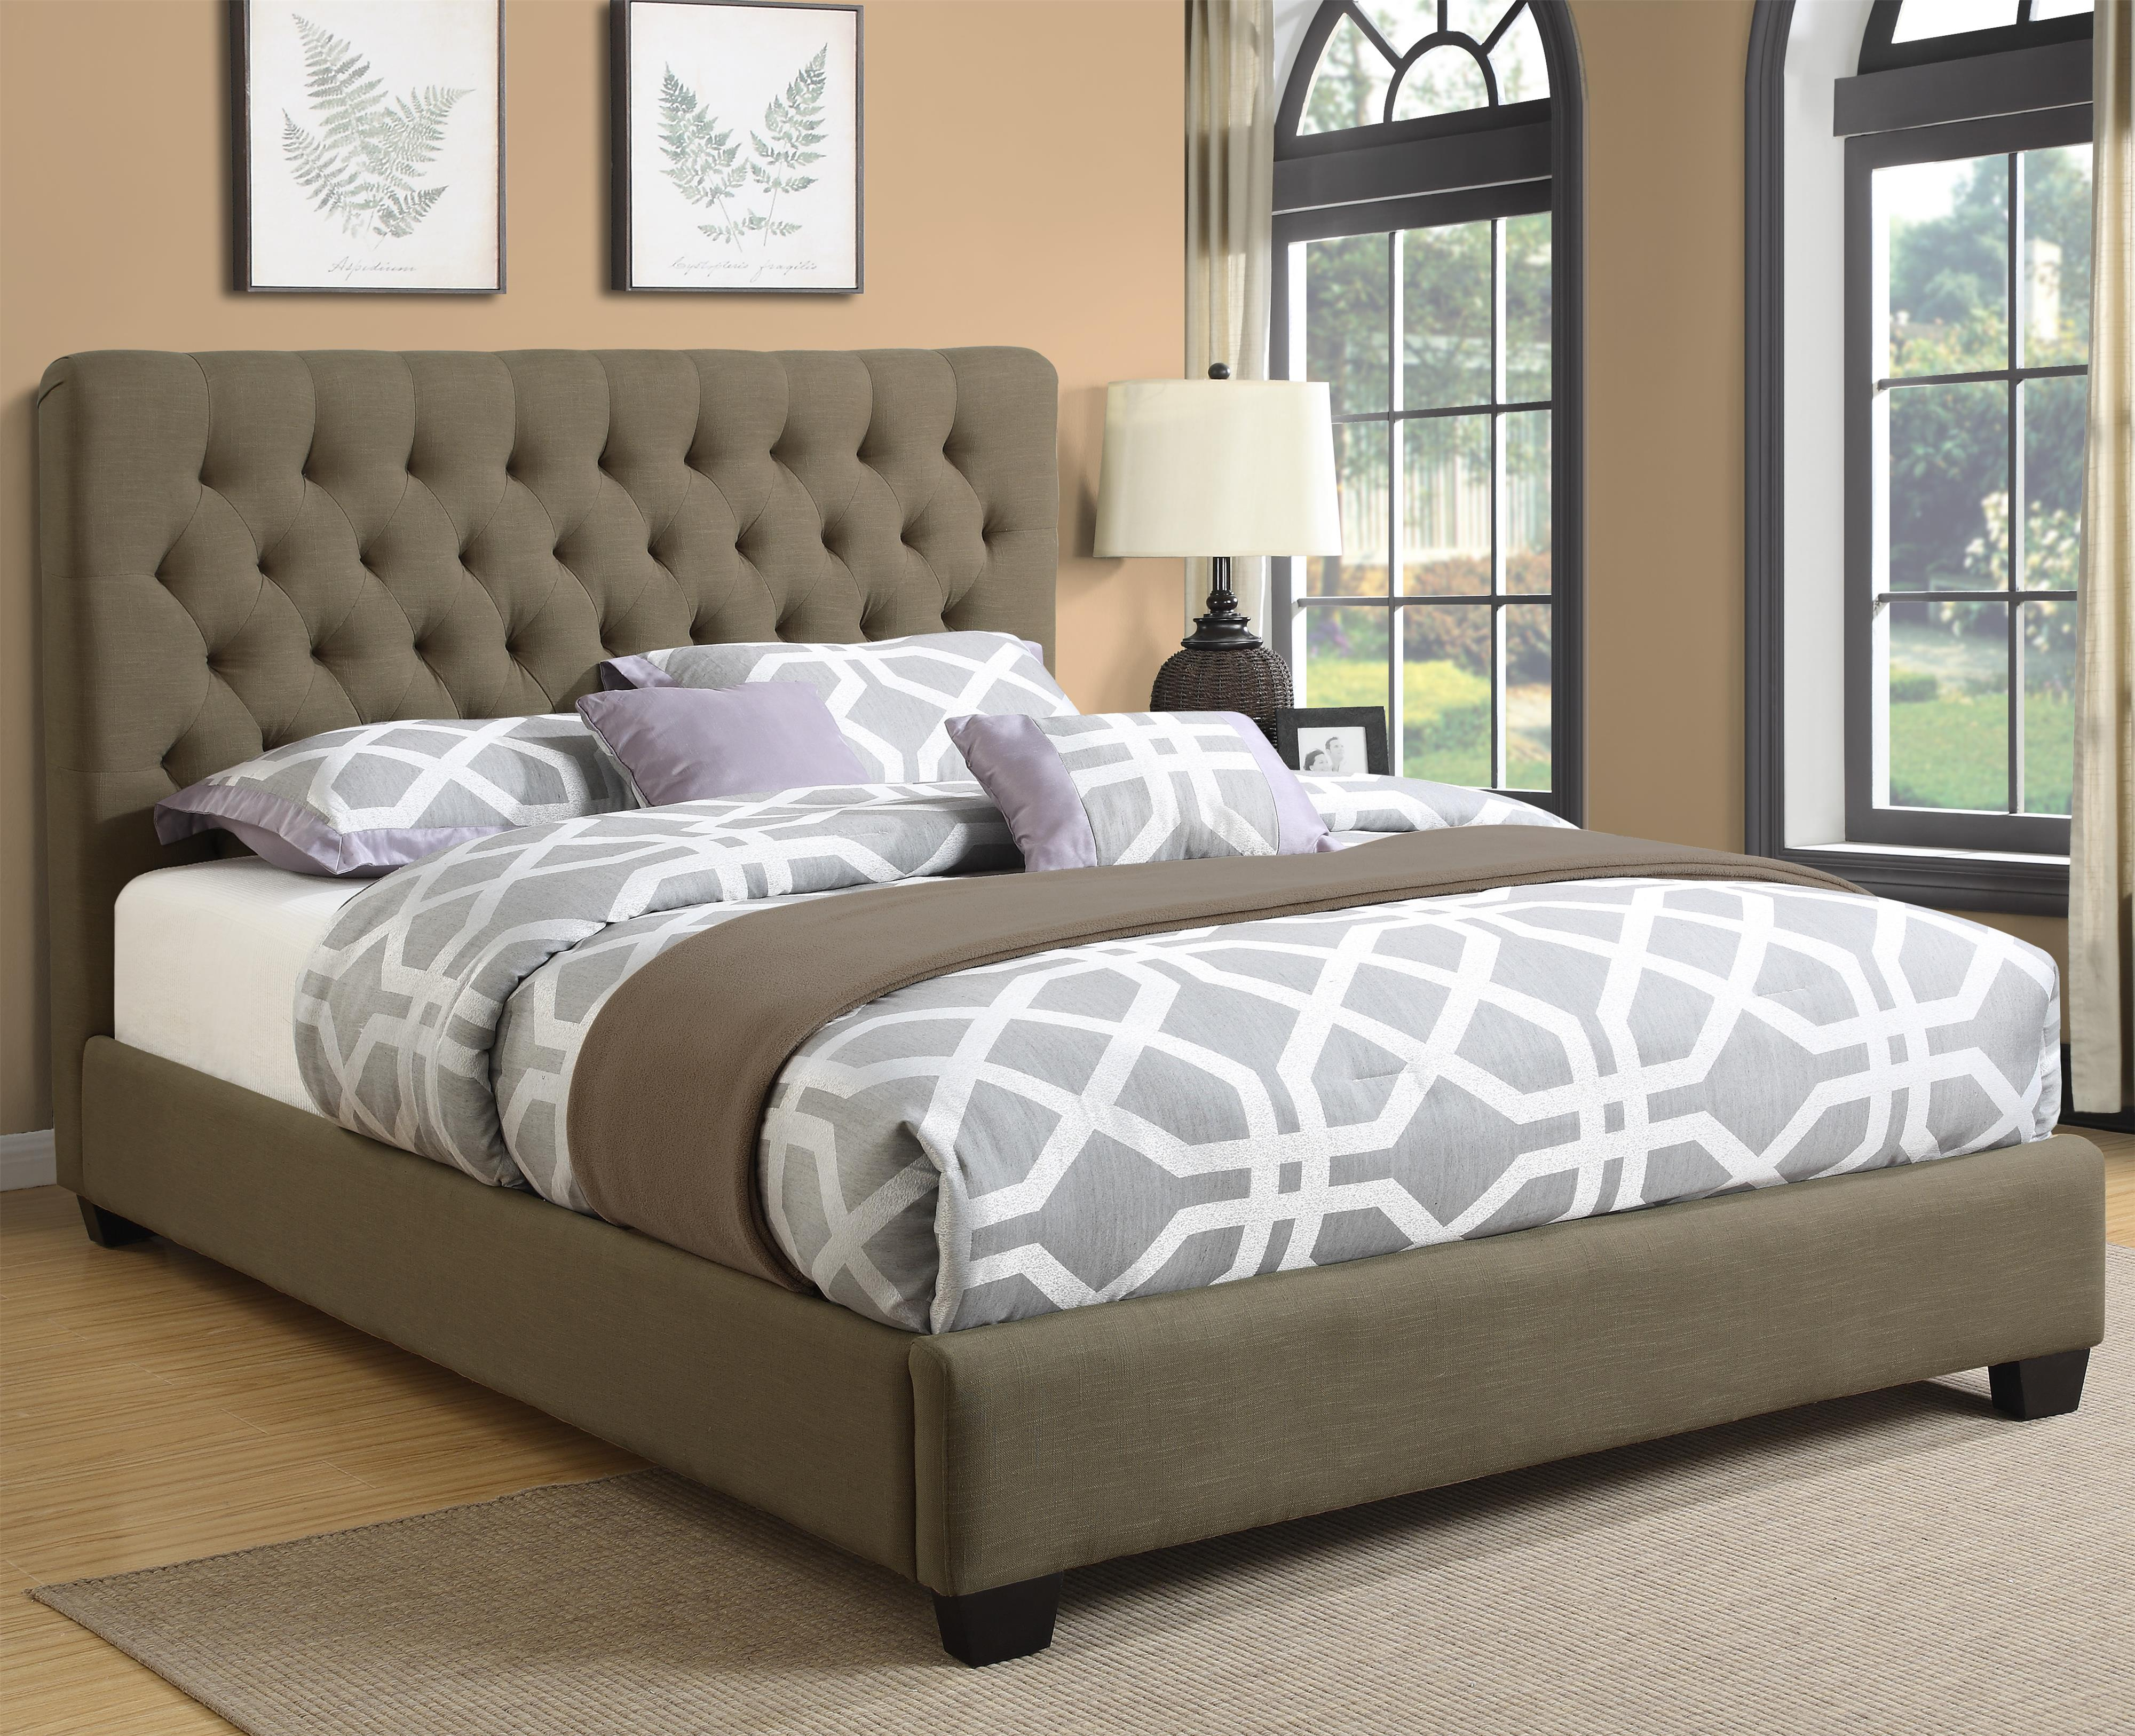 Coaster Upholstered Beds Queen Chloe Upholstered Bed - Item Number: 300528Q